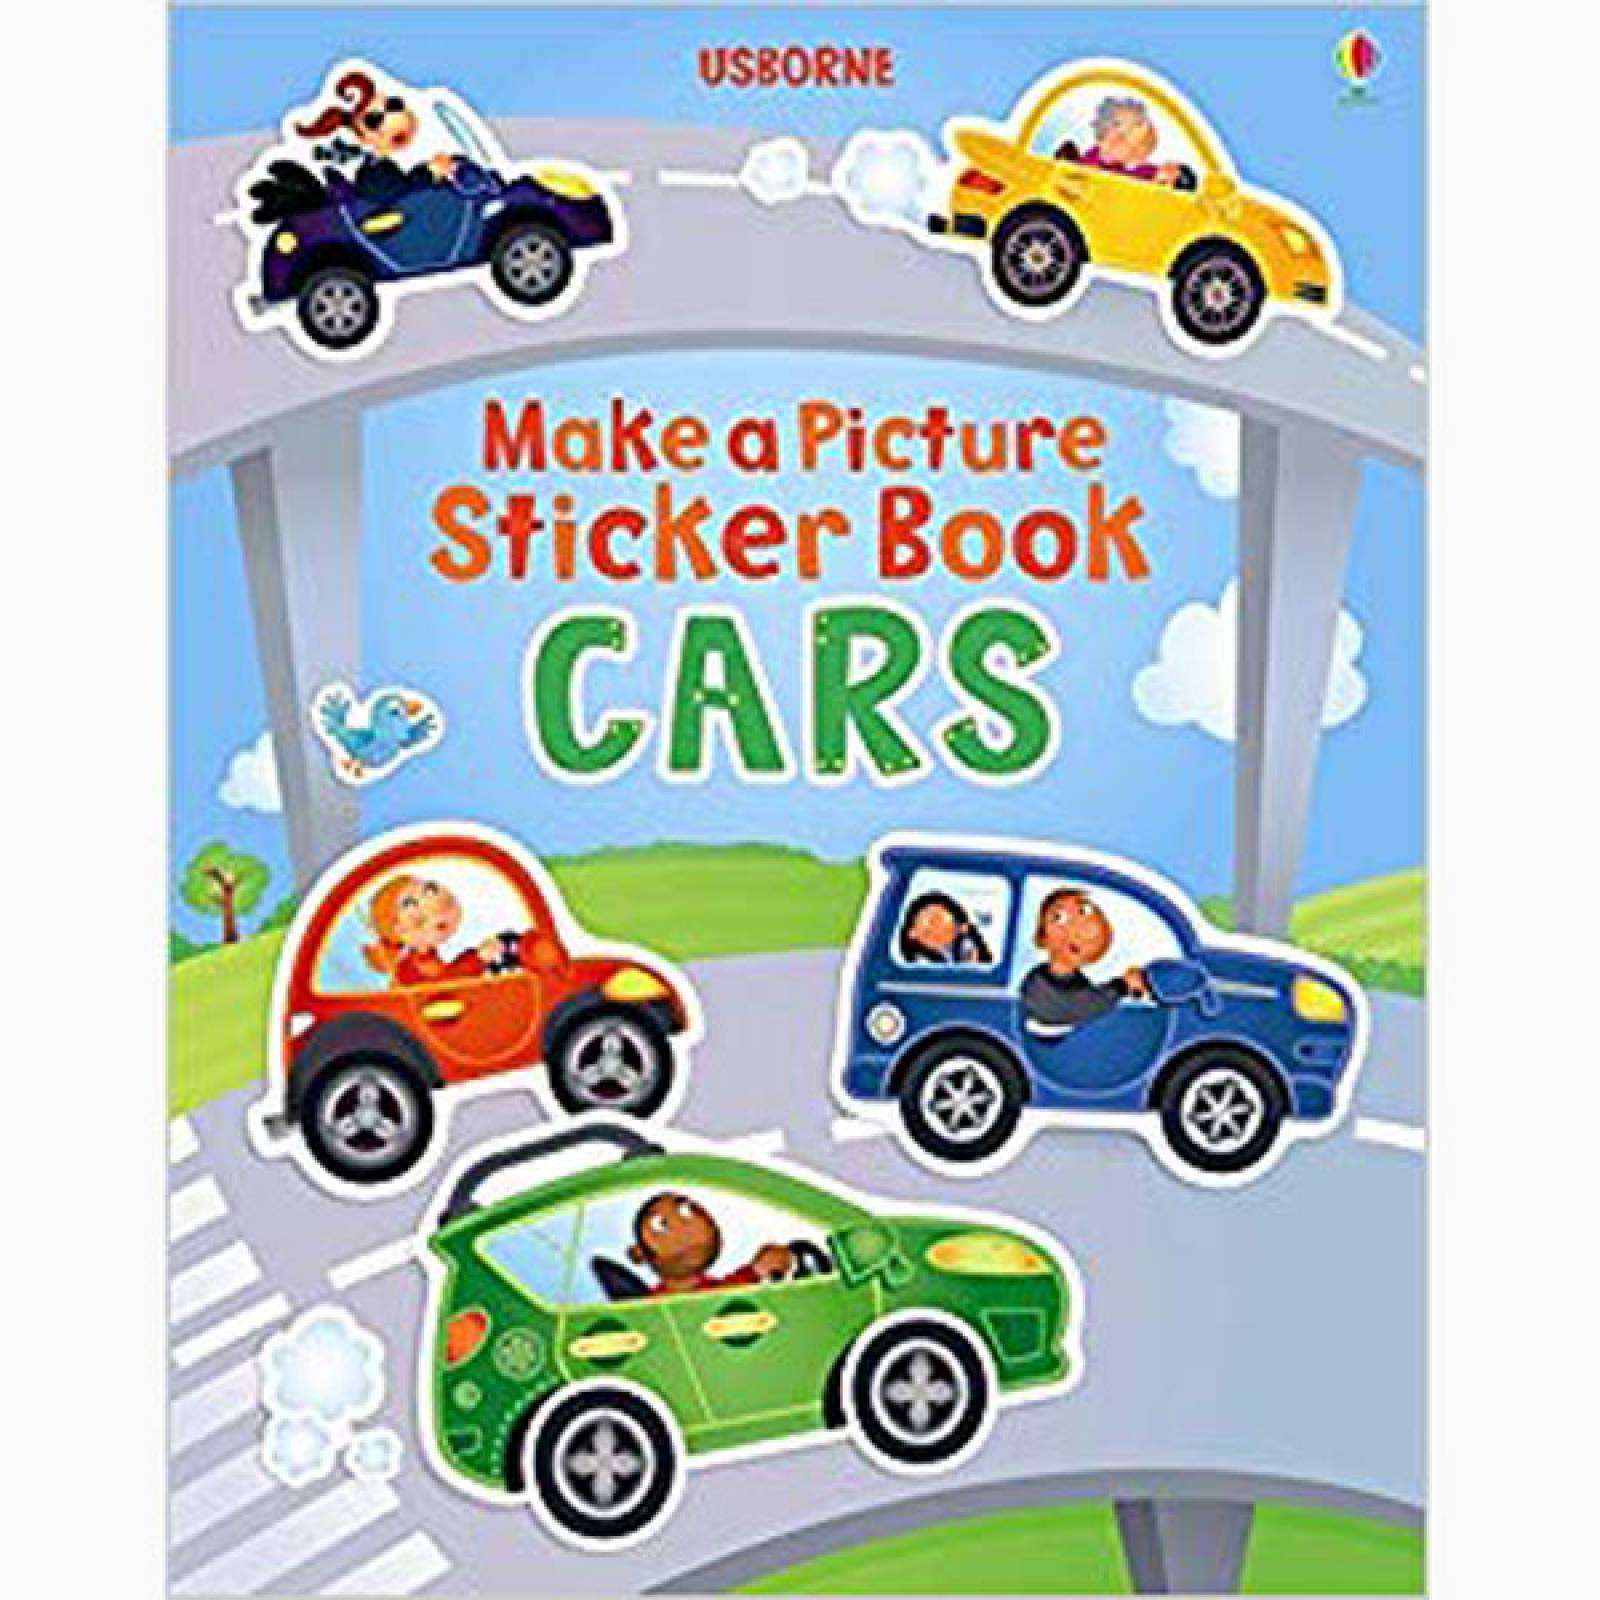 Make A Picture Sticker Book: Cars - Paperback Book thumbnails